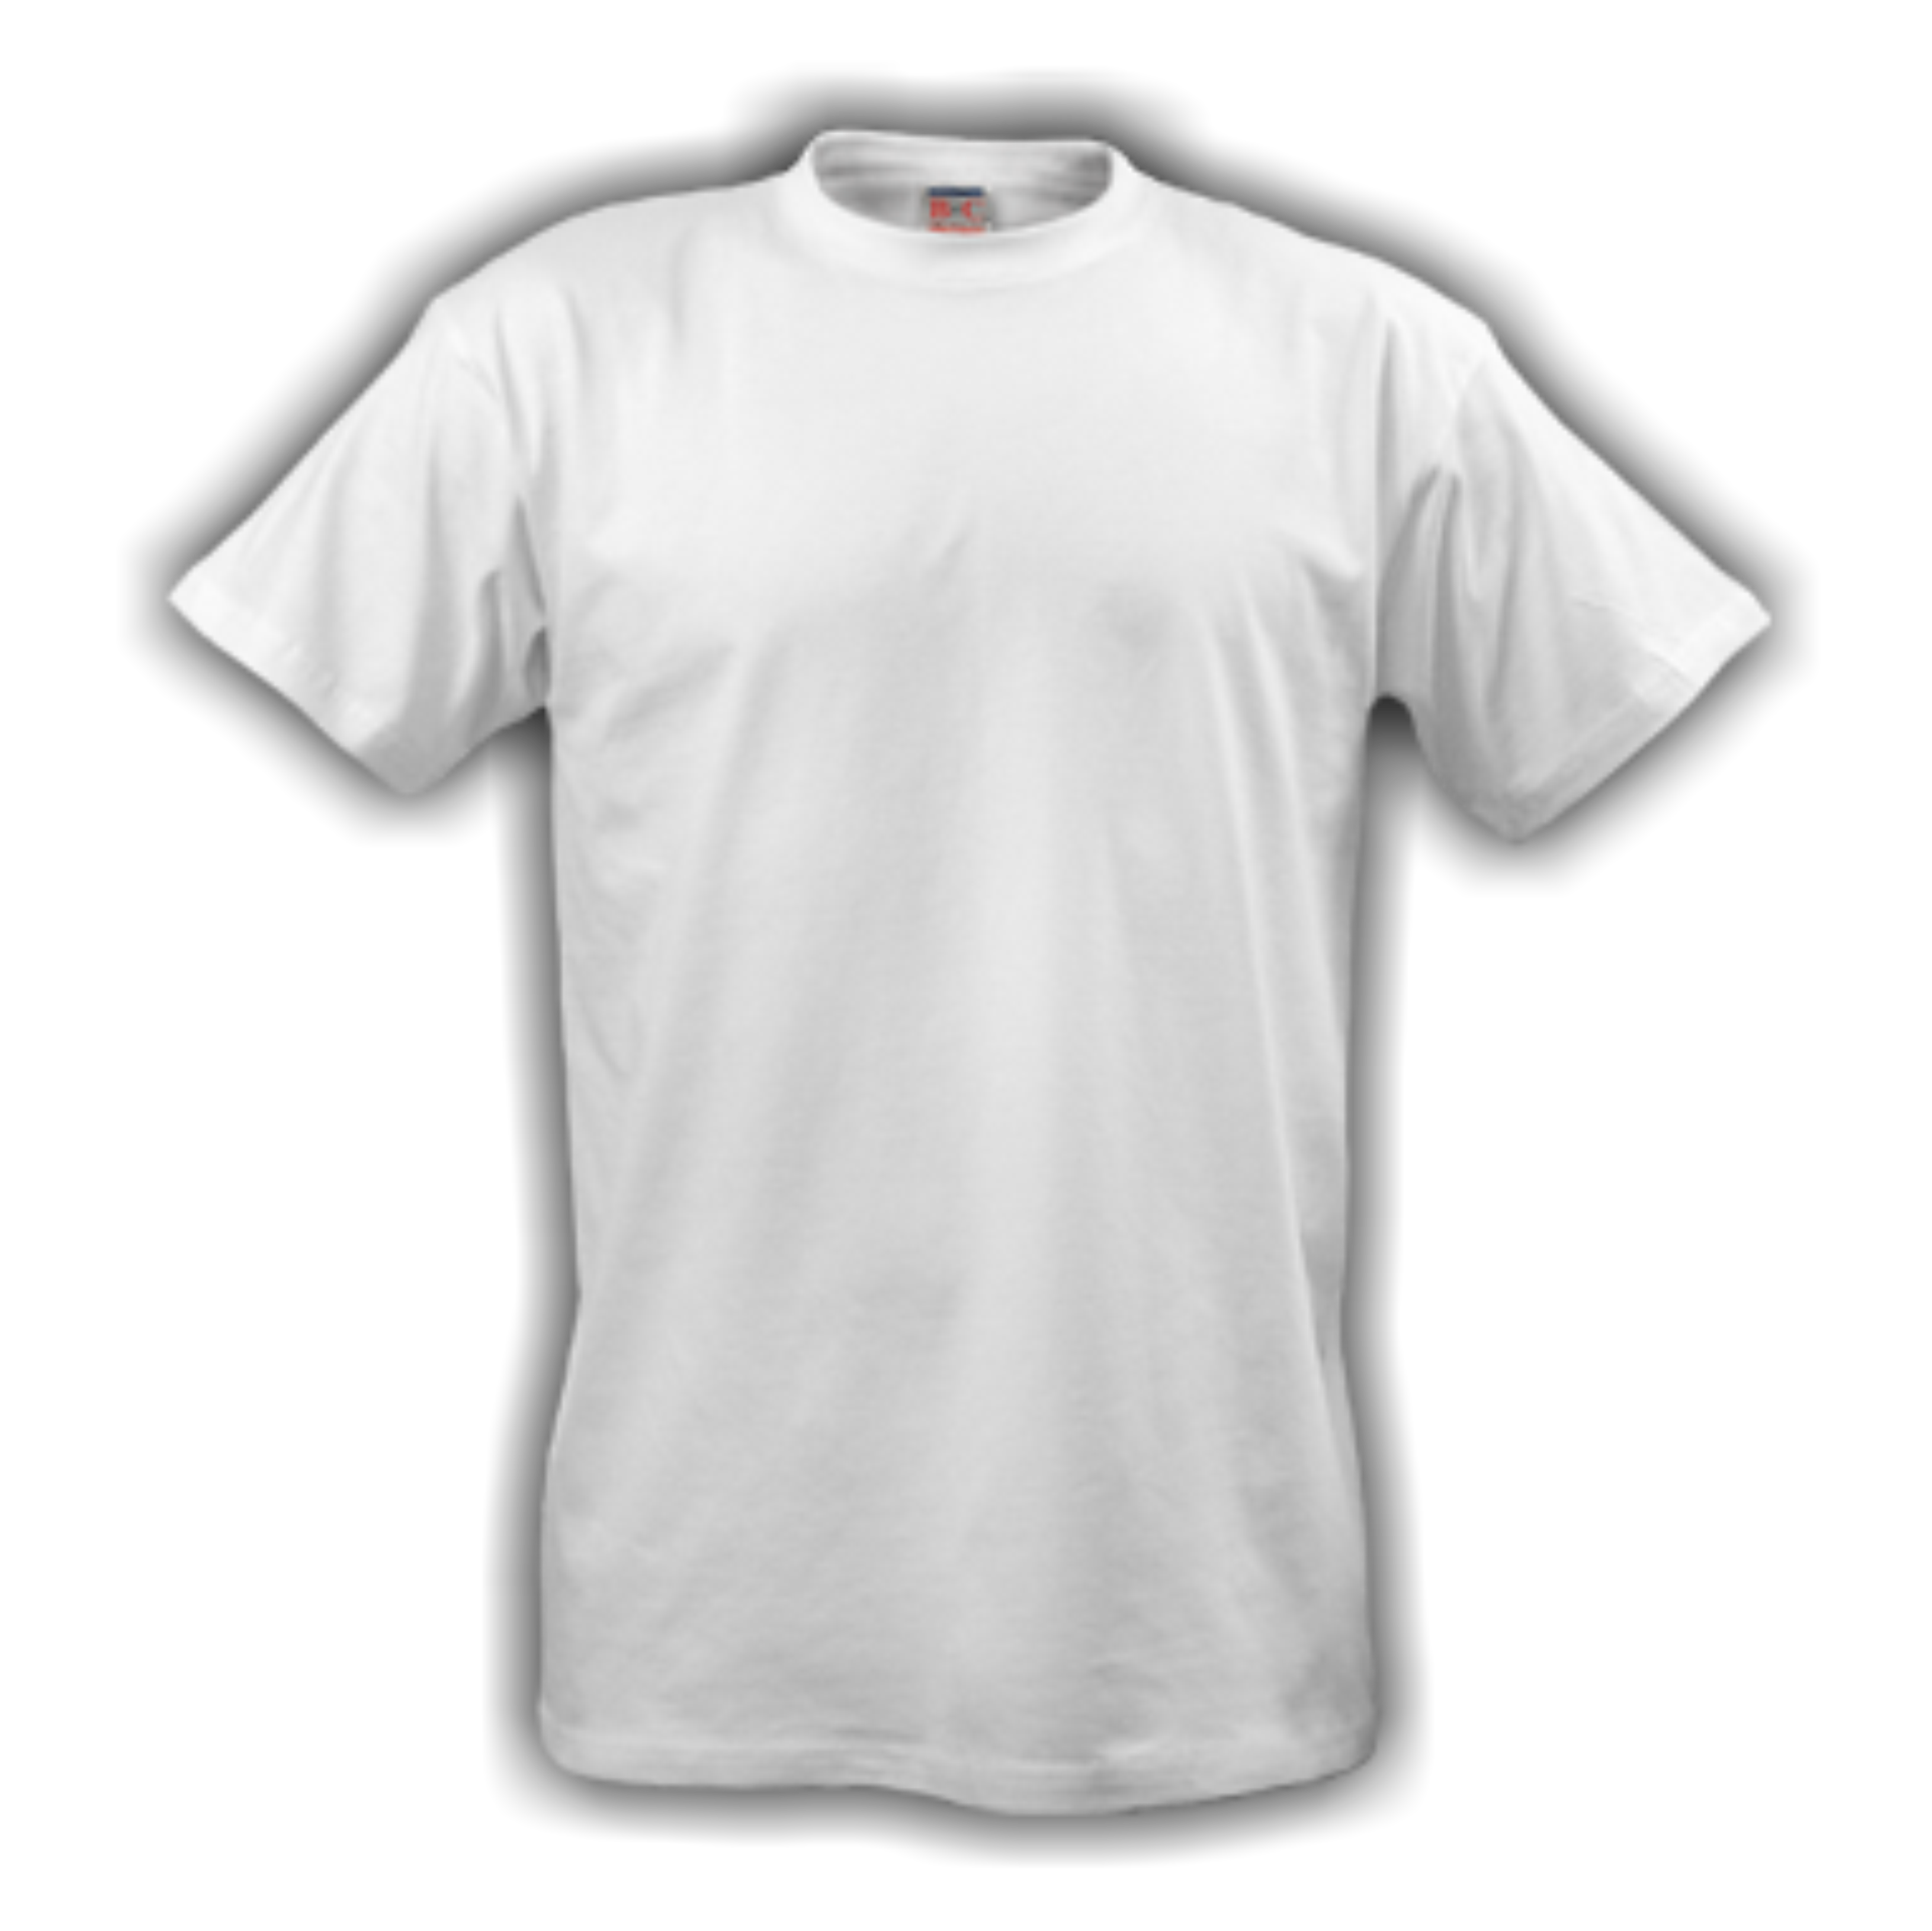 Download White T Shirt Png Image T Shirt Image White Tshirt T Shirt Png